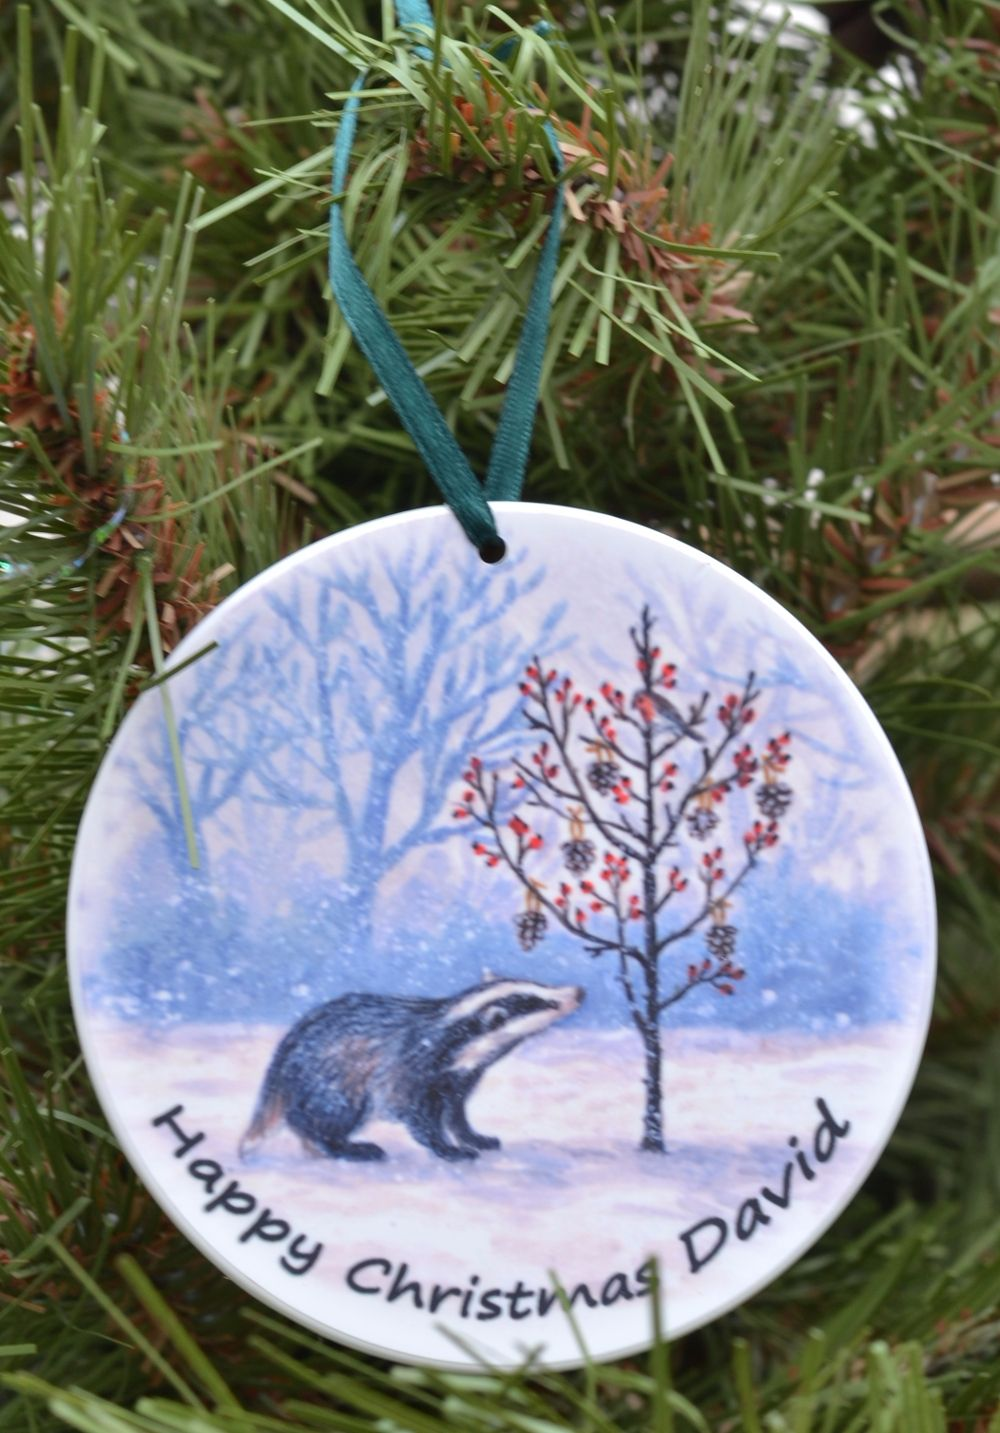 Bauble or Mini Christmas Bags - Badger